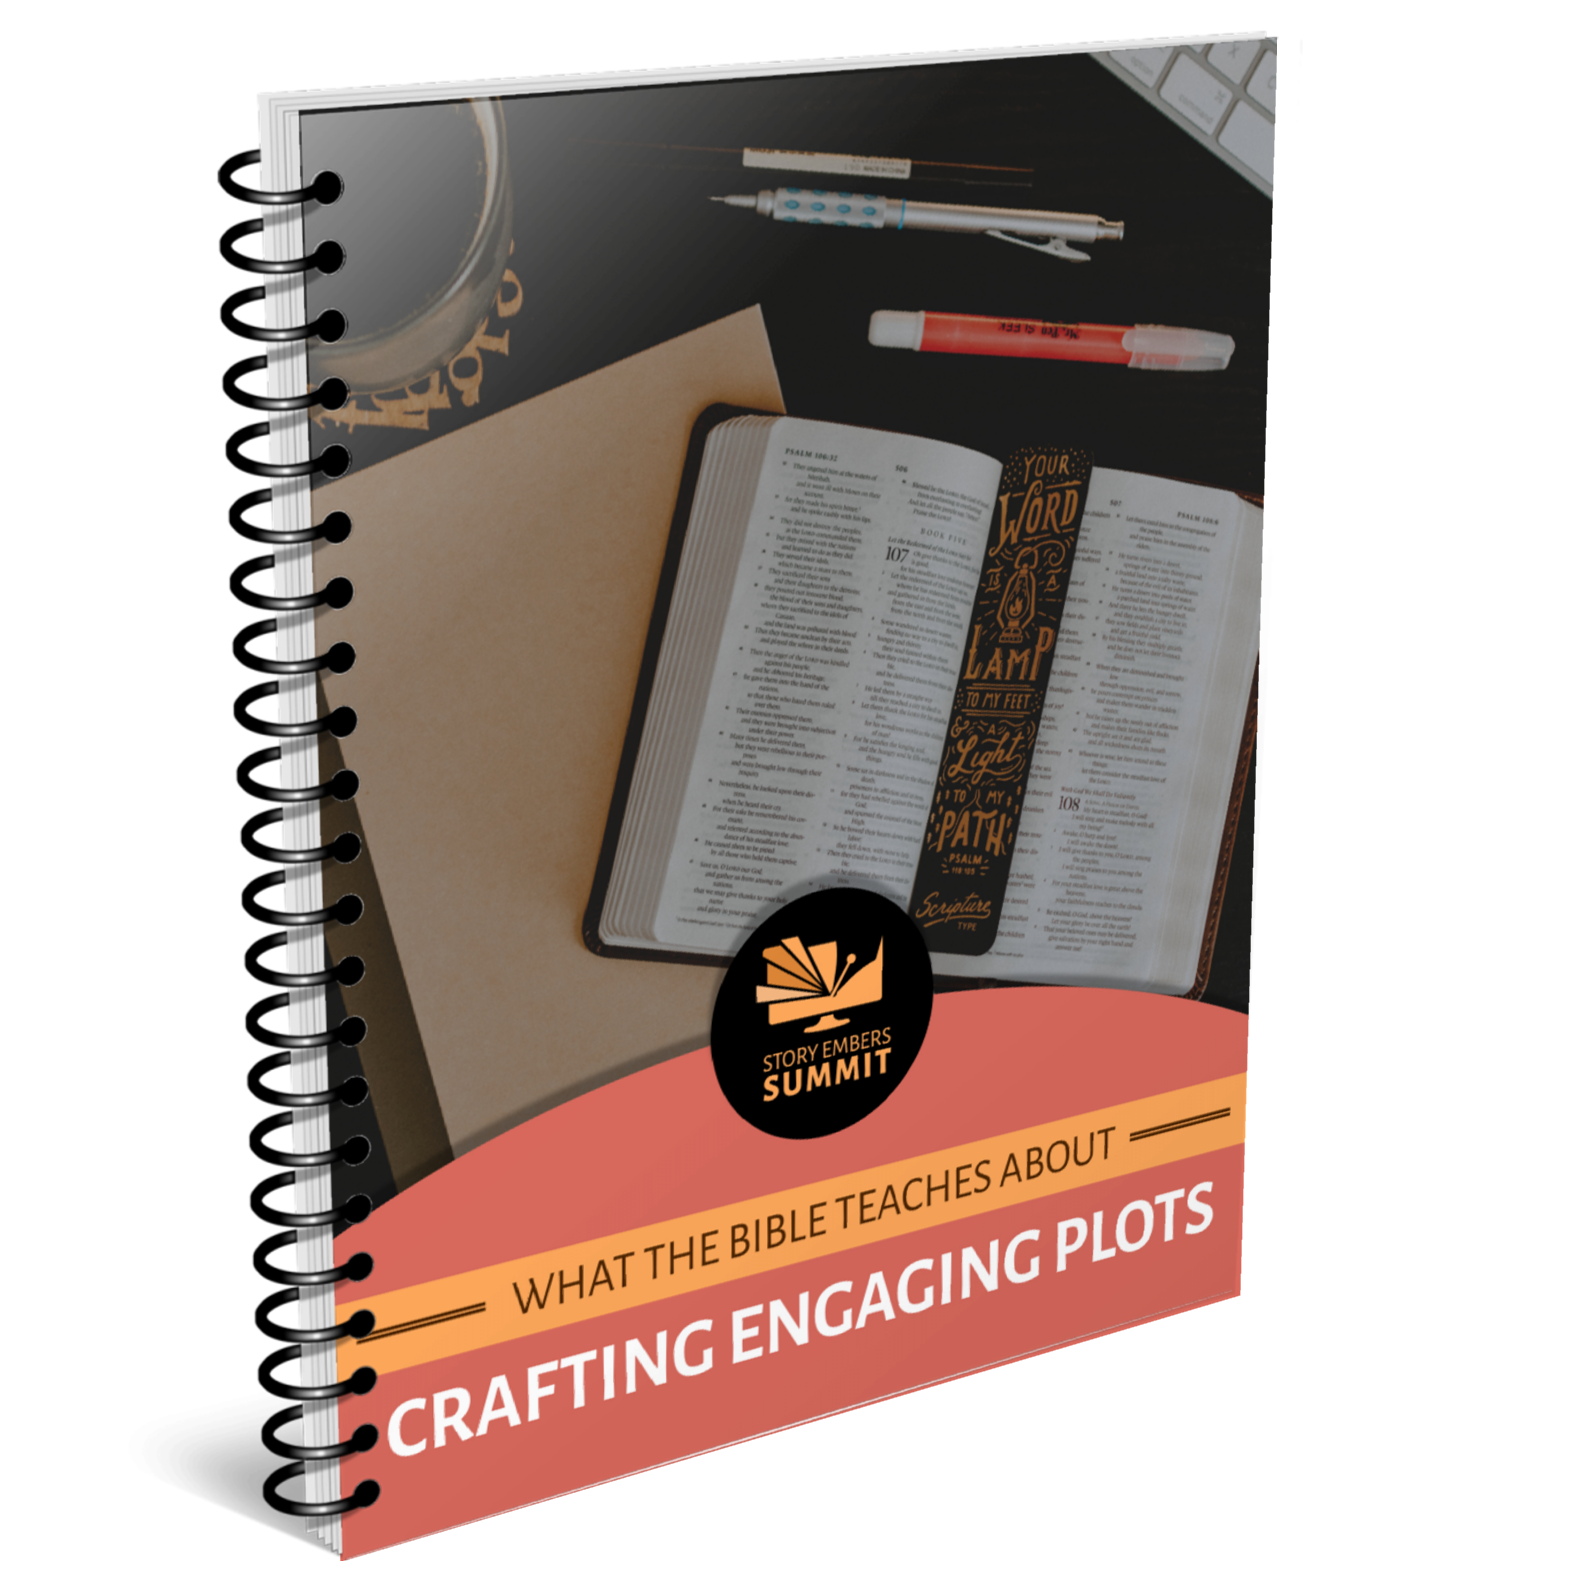 Learn What the Bible Says about Engaging Plots